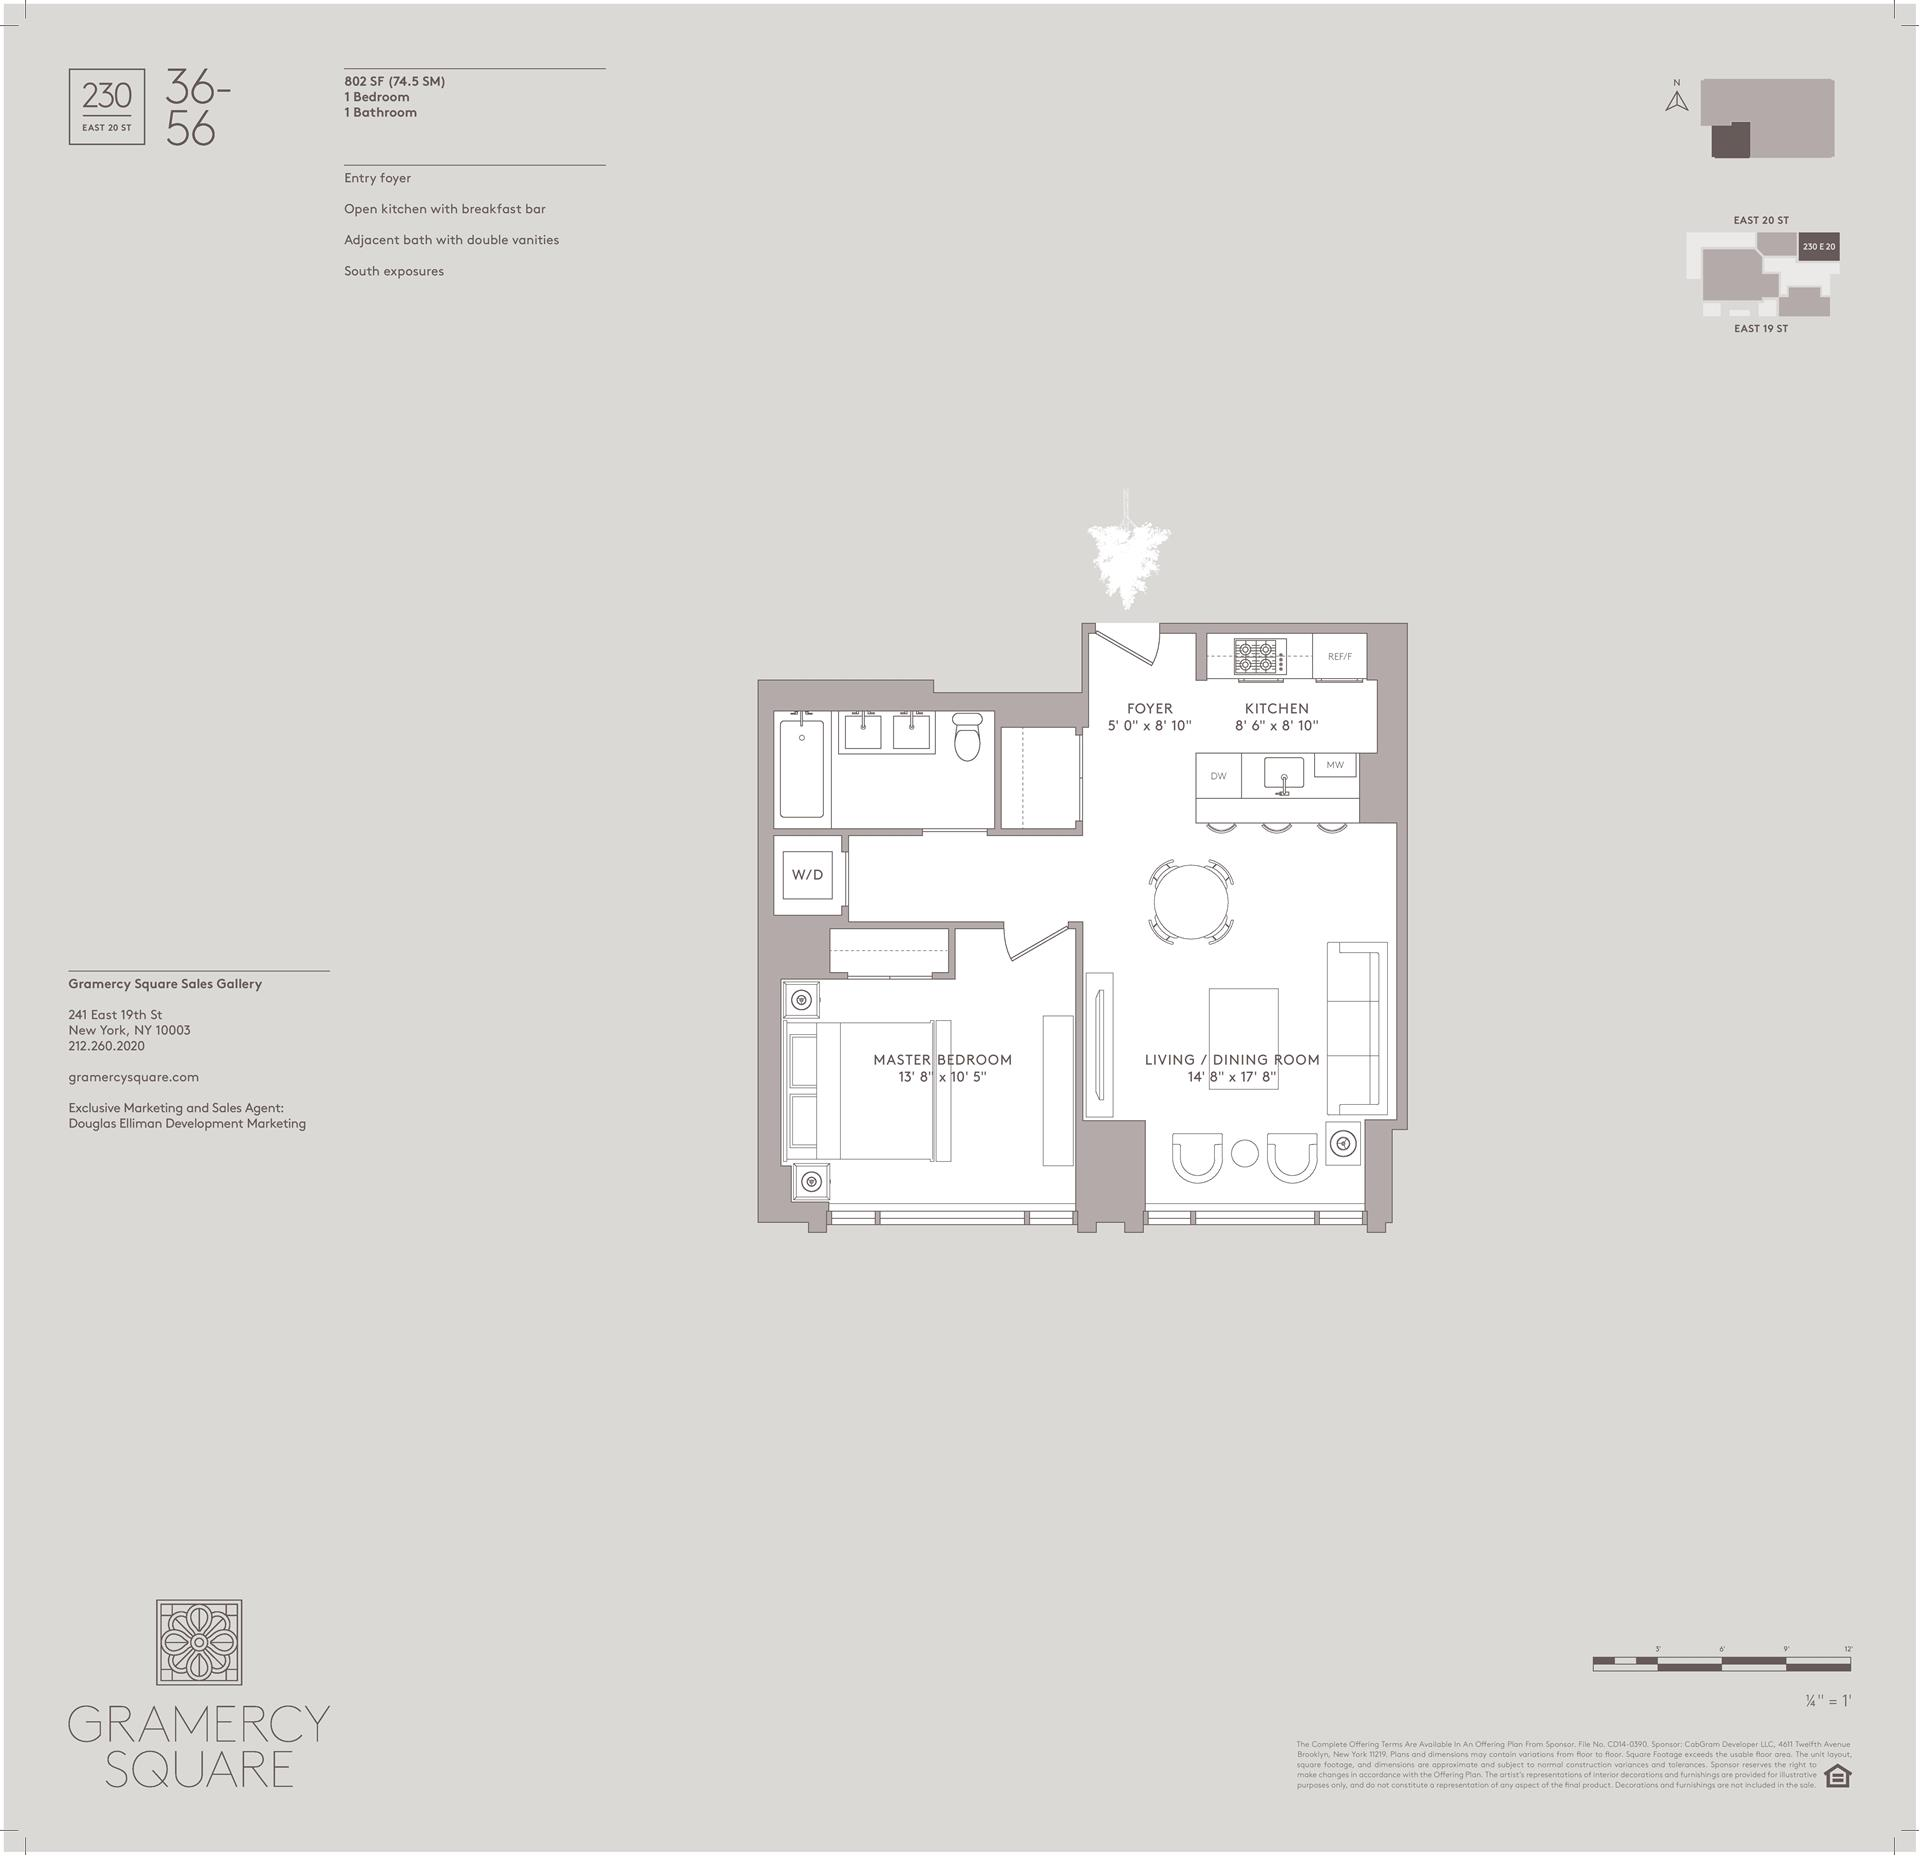 Floor plan of Gramercy Square, 230 East 20th St, 56 - Gramercy - Union Square, New York